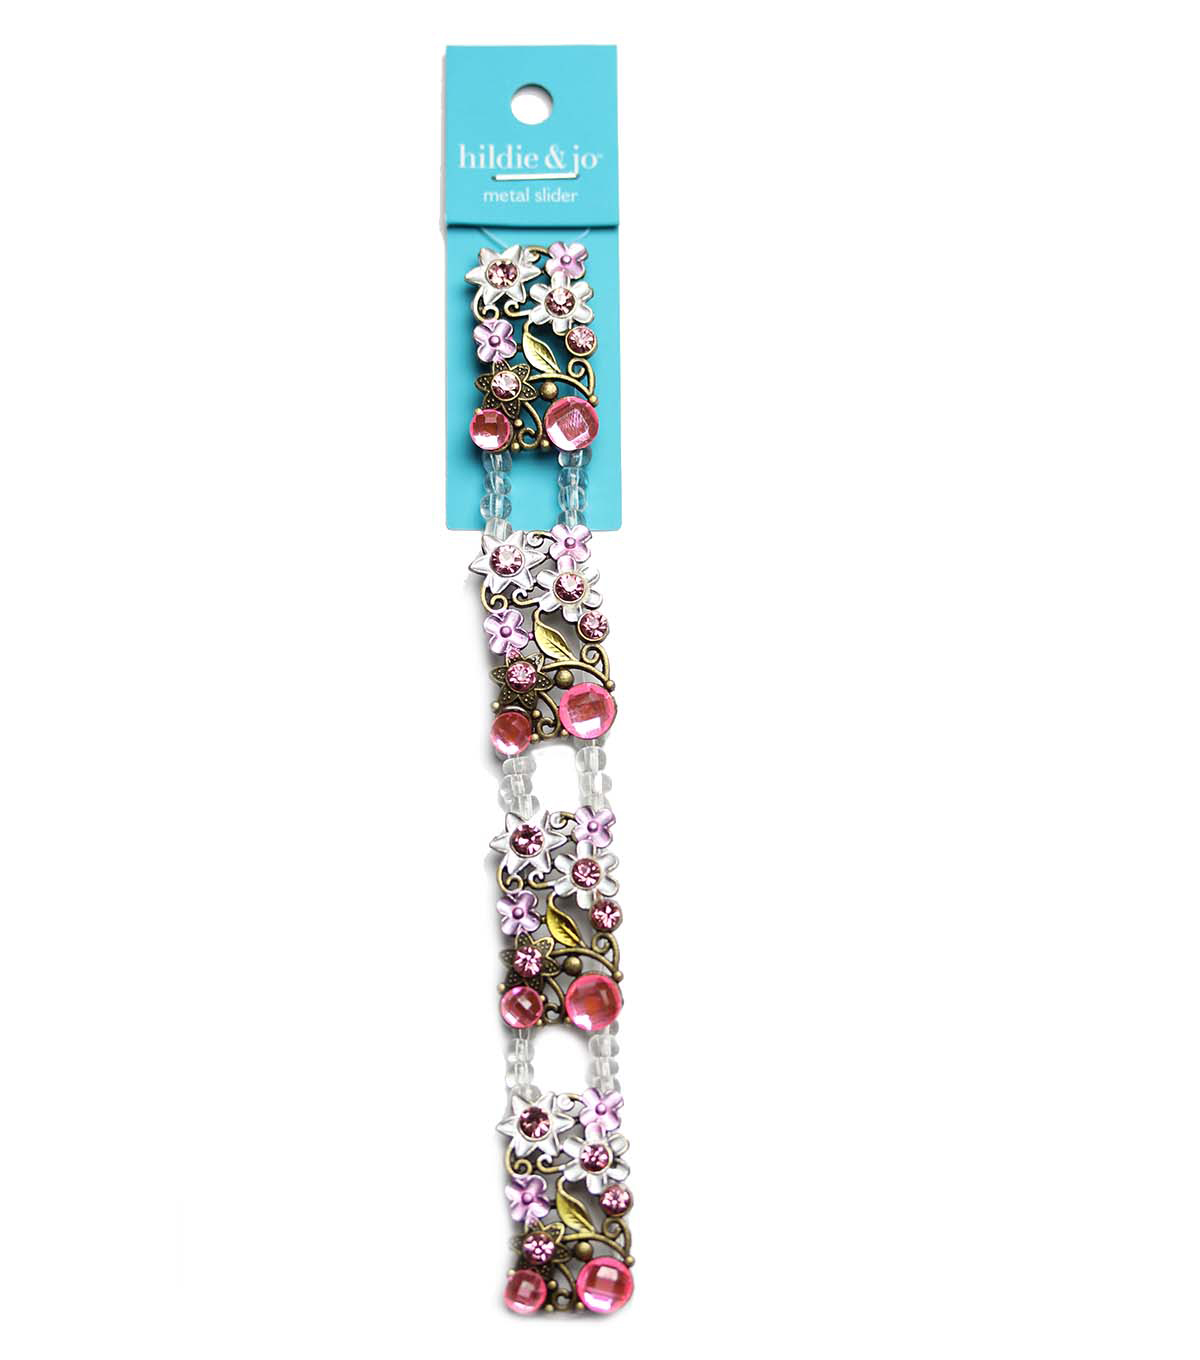 hildie & jo Strung Beads-Pink Flower Metal Slider